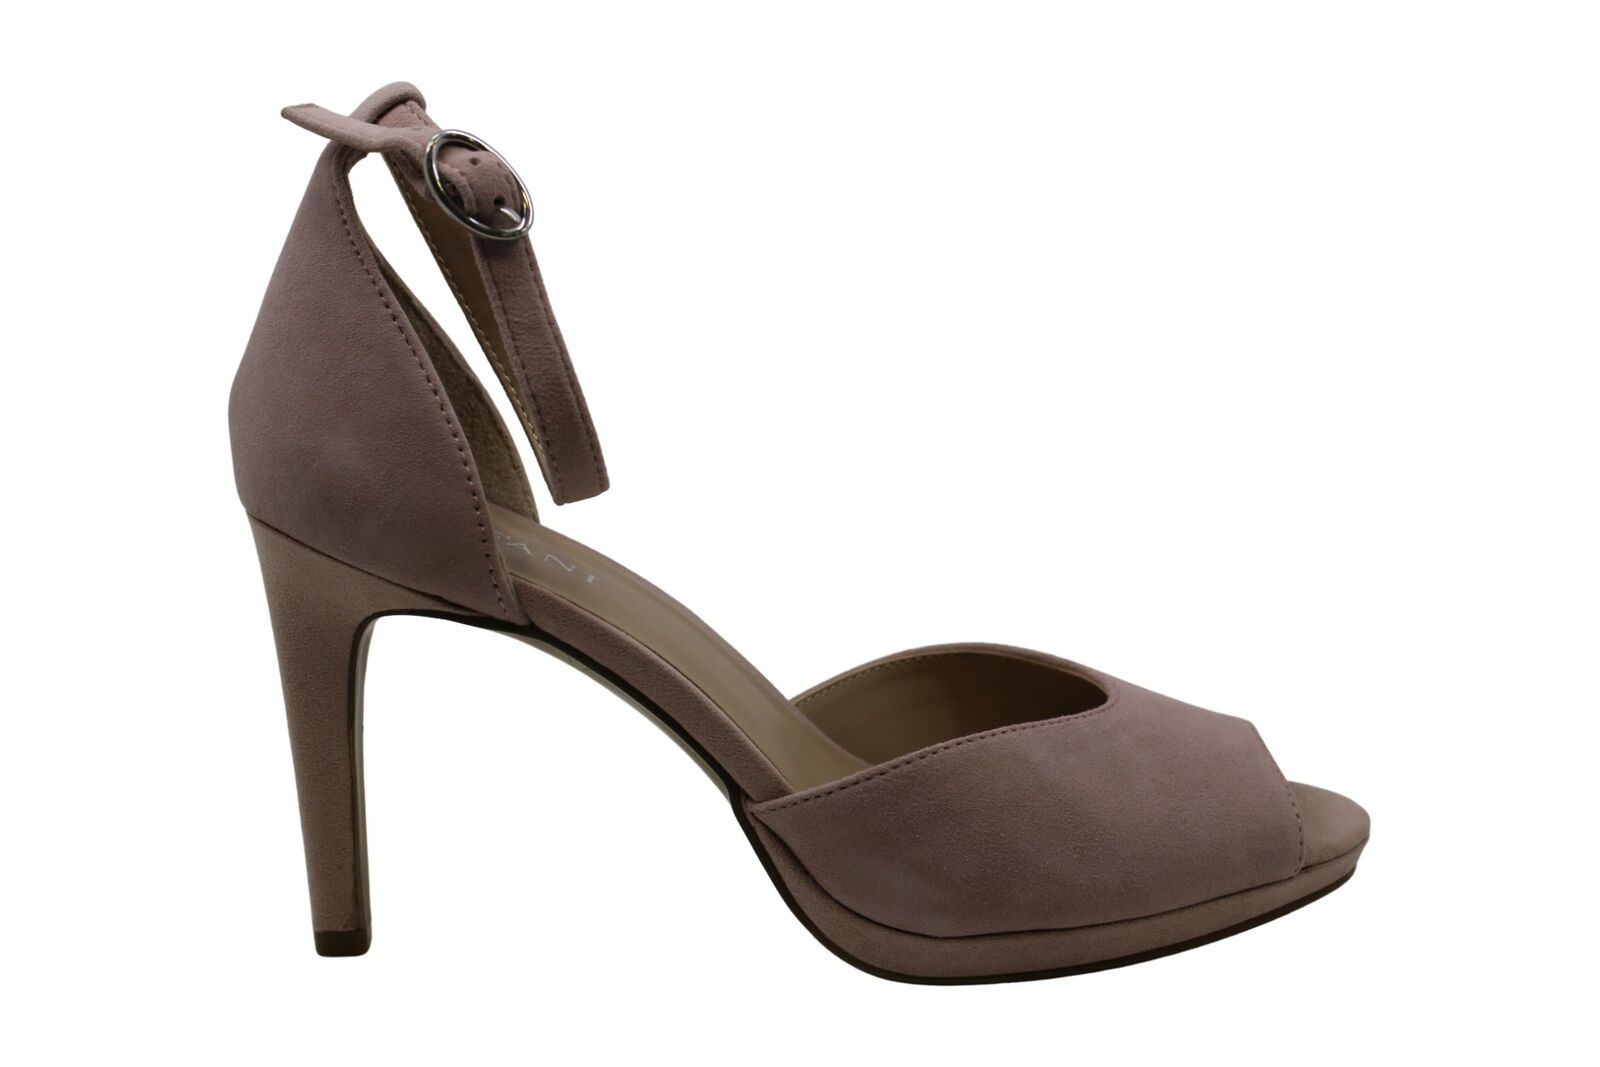 Alfani Womens Peonyy Suede Peep Toe Ankle Strap D-orsay, Blush Suede, Size 9.0